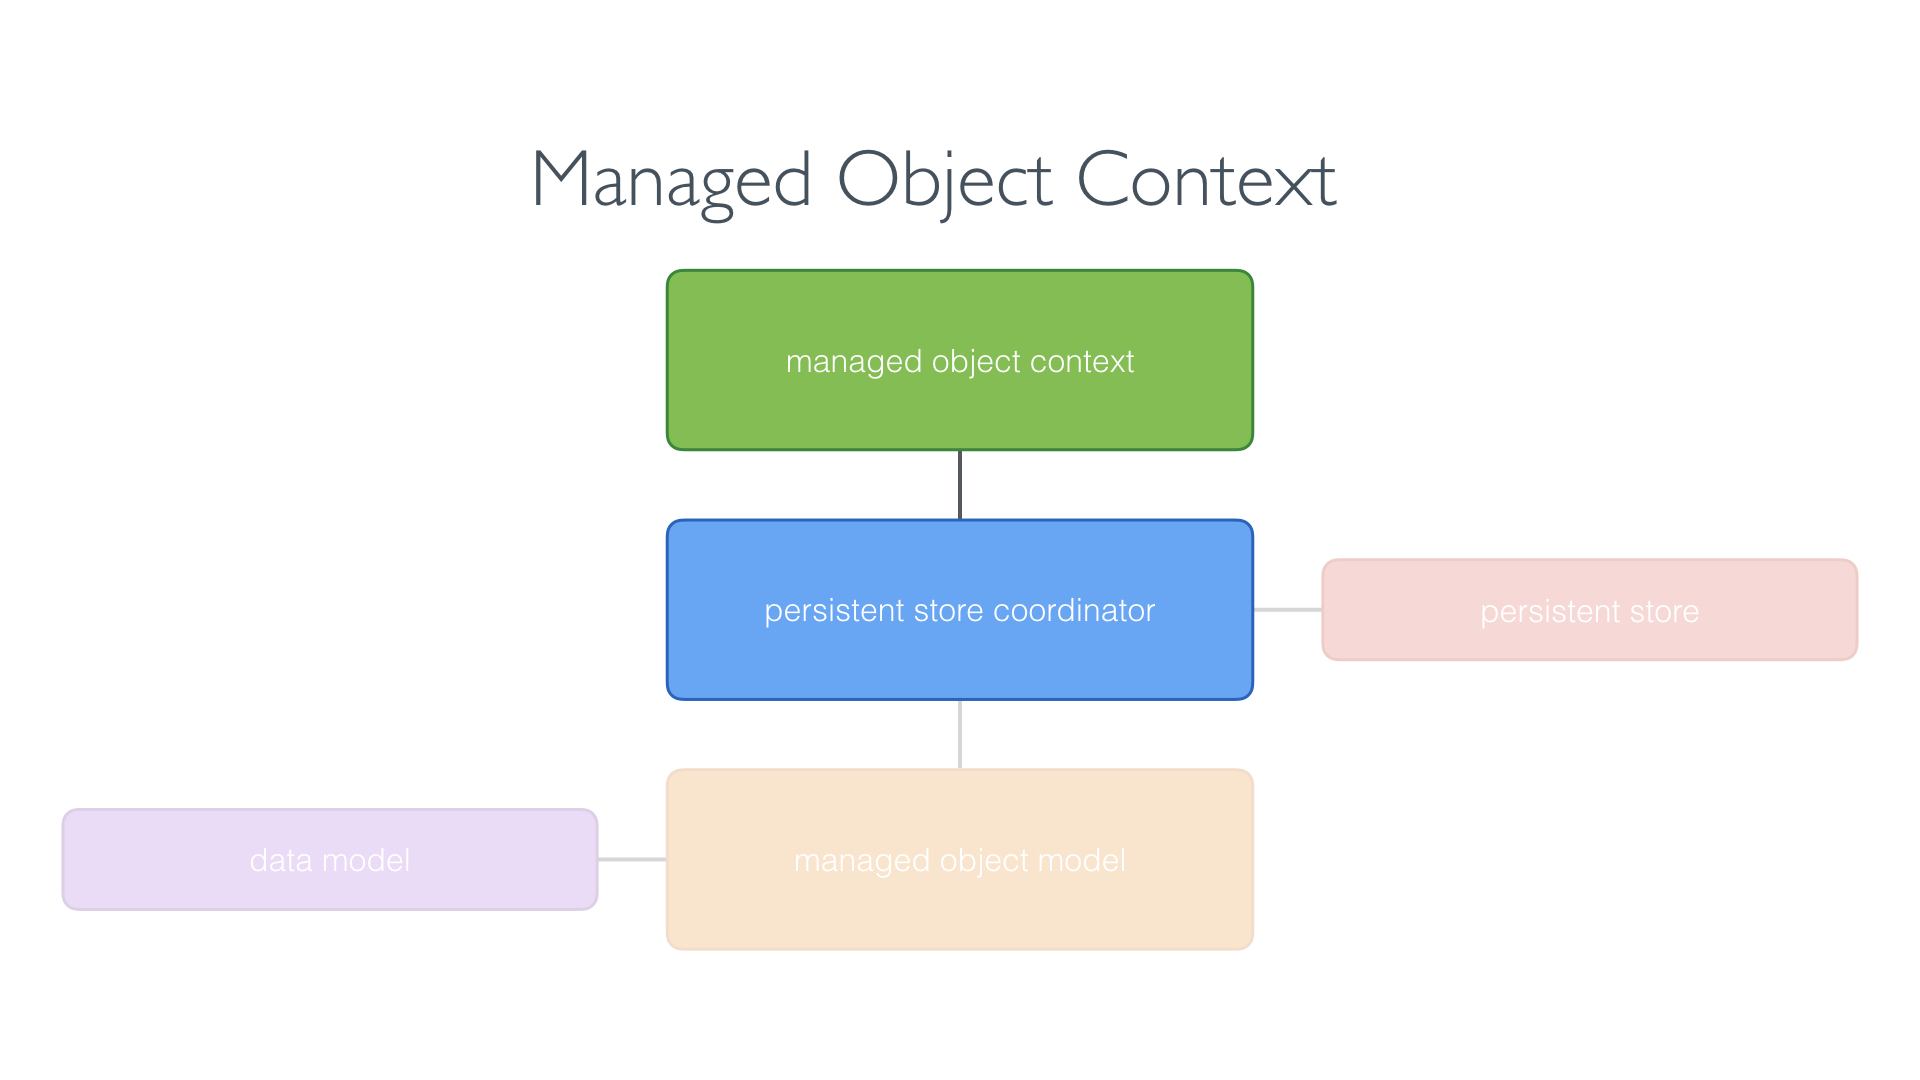 Managed Object Context